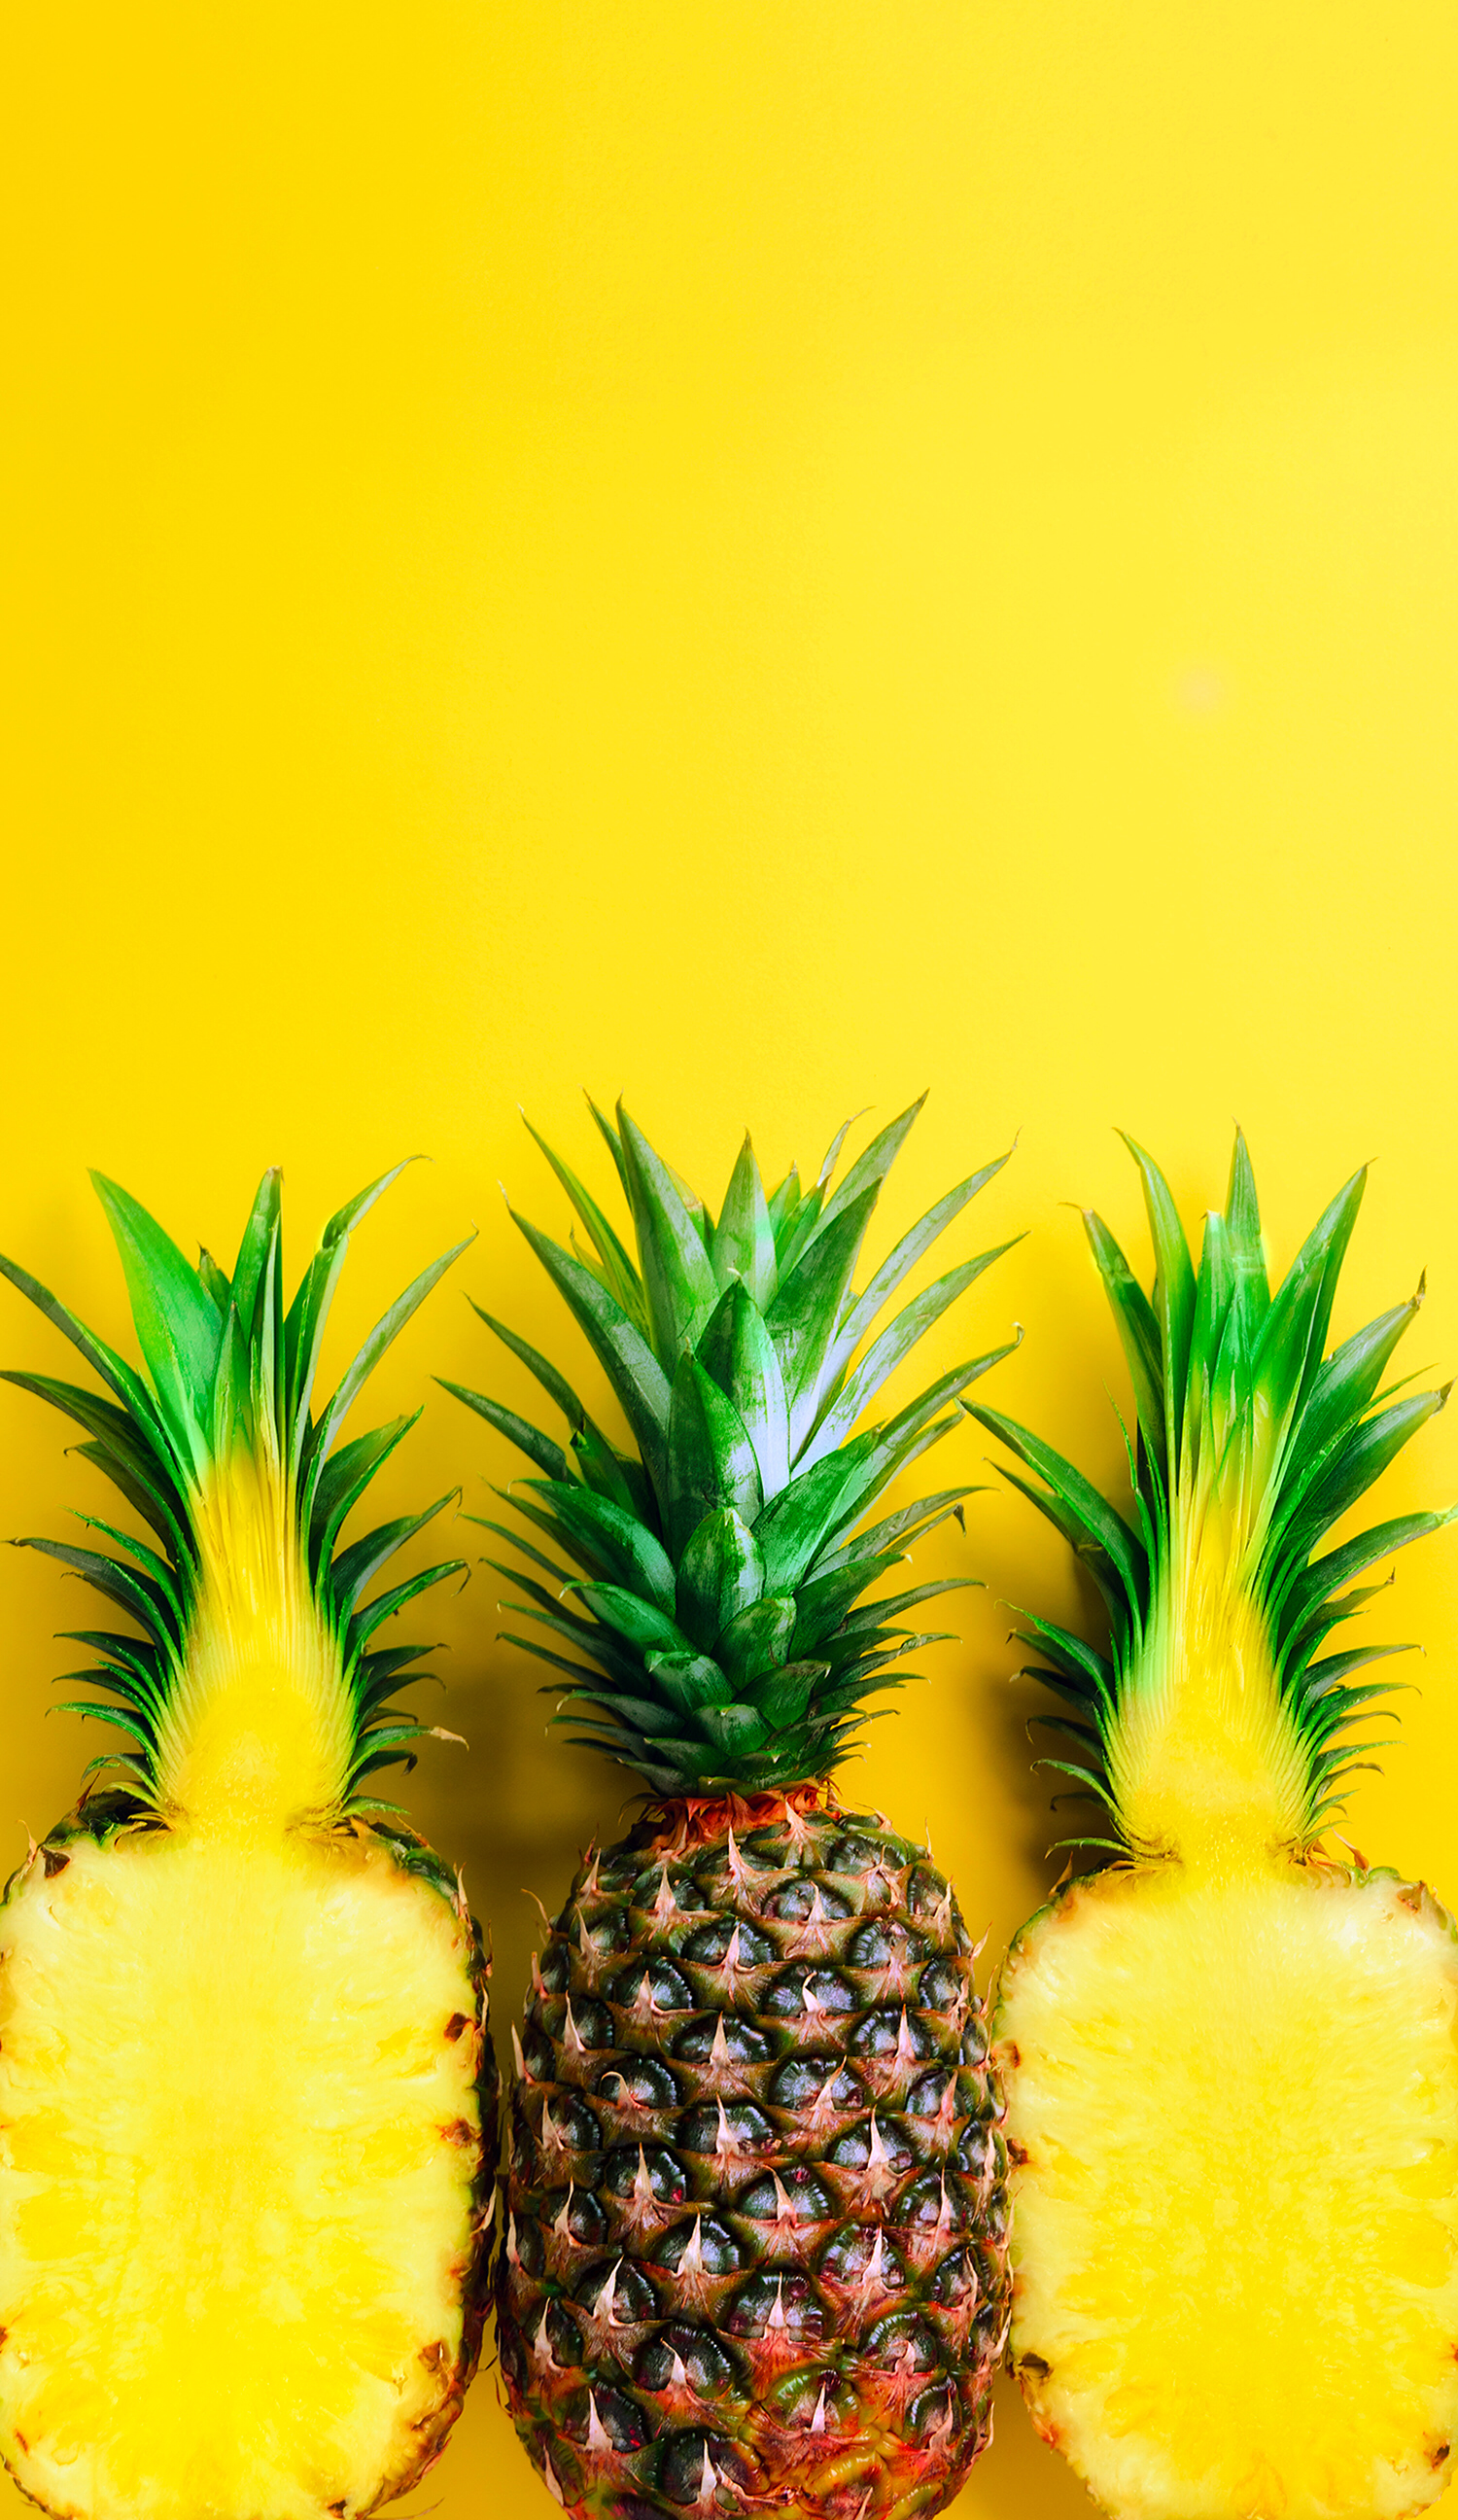 Wallpaper lockscreen pineapple yellow // обои ананас